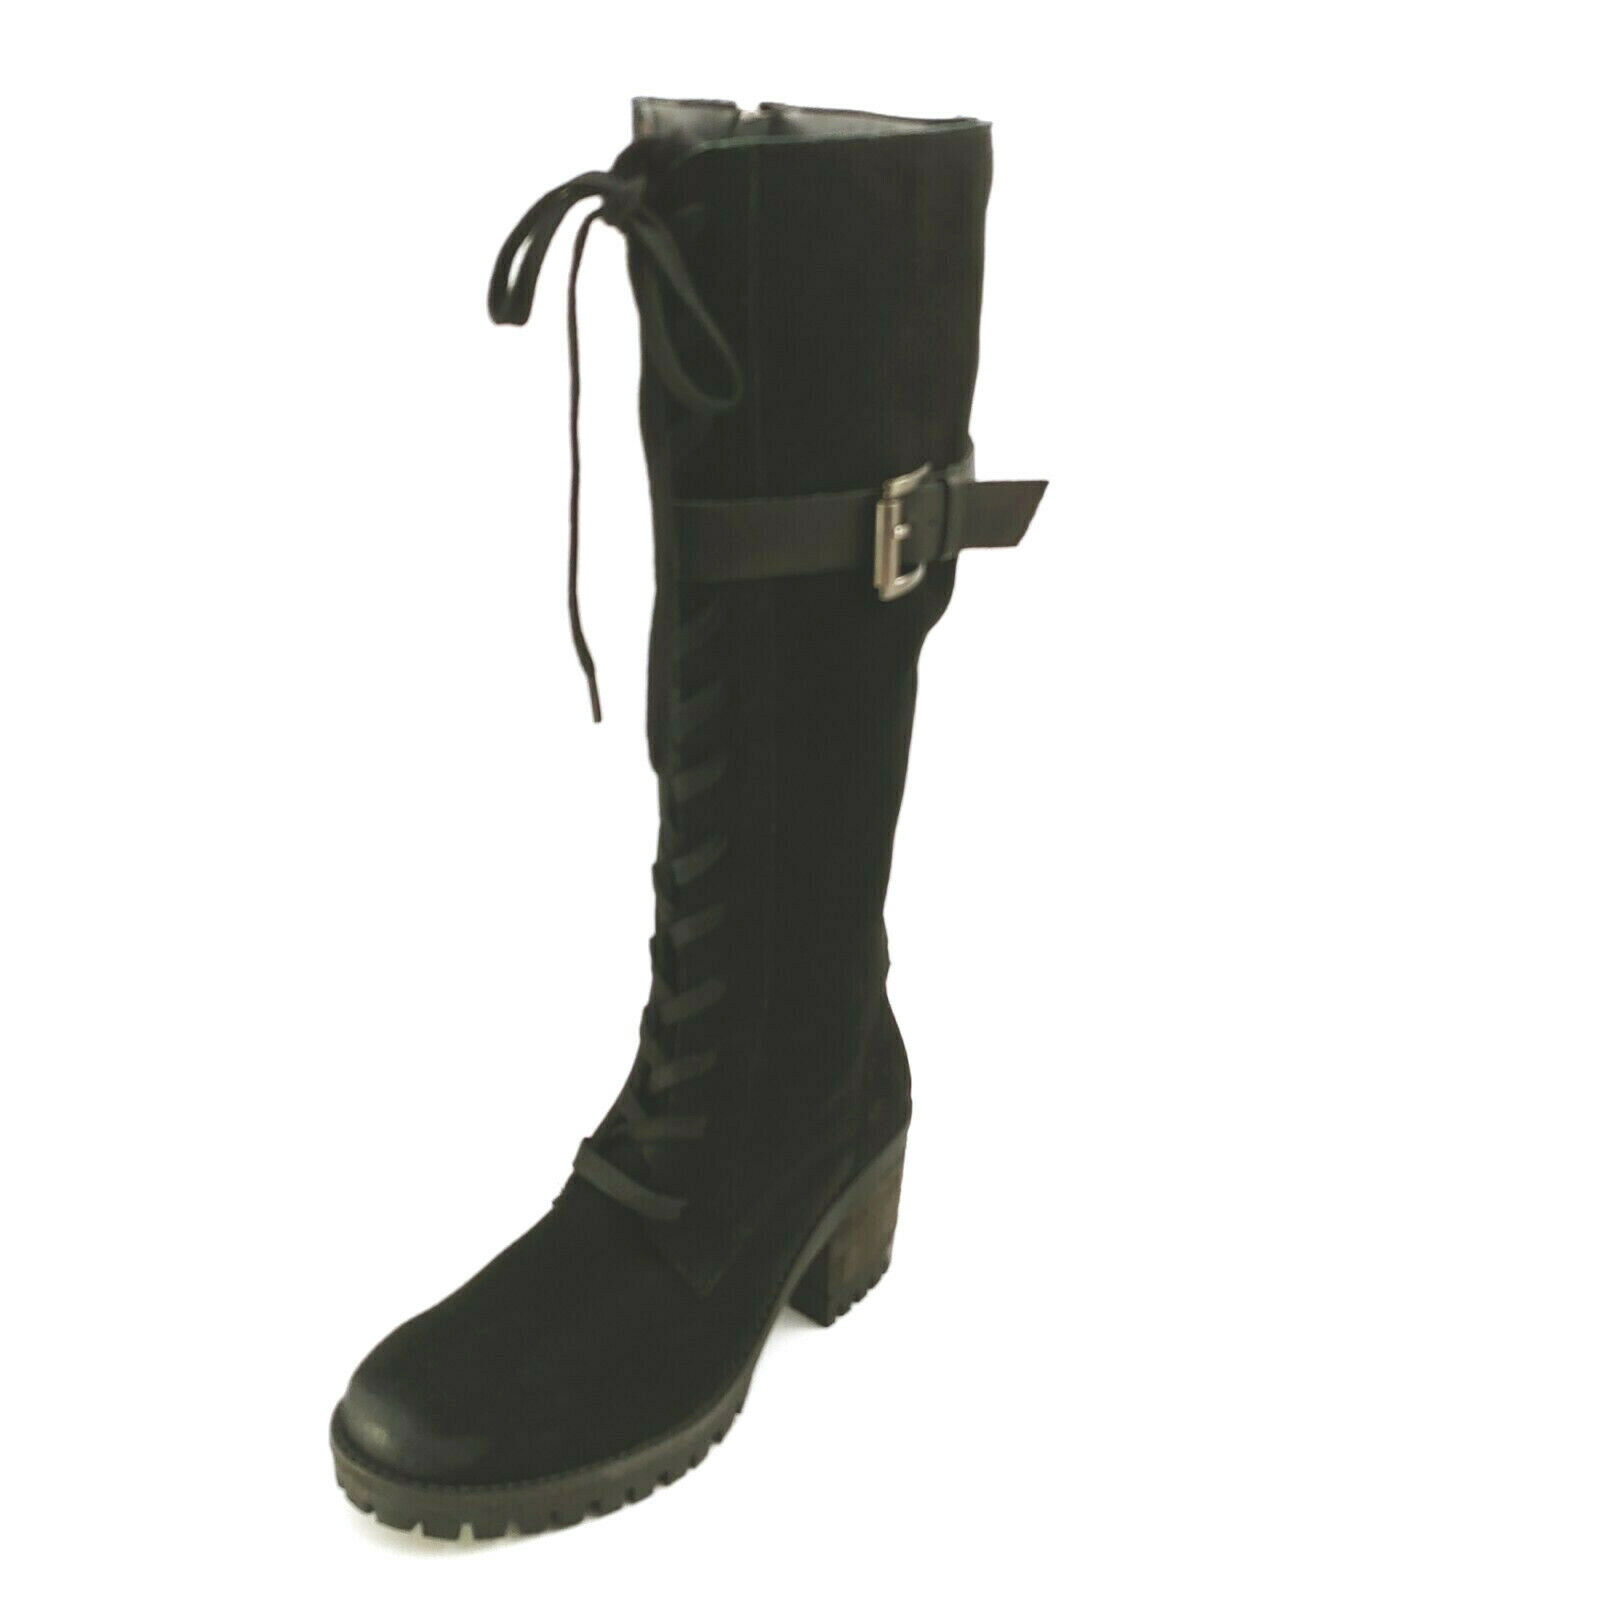 Vintage Foundry Co. Womens Naomi Leather Knee High Boots Lace Up Black 6.5M